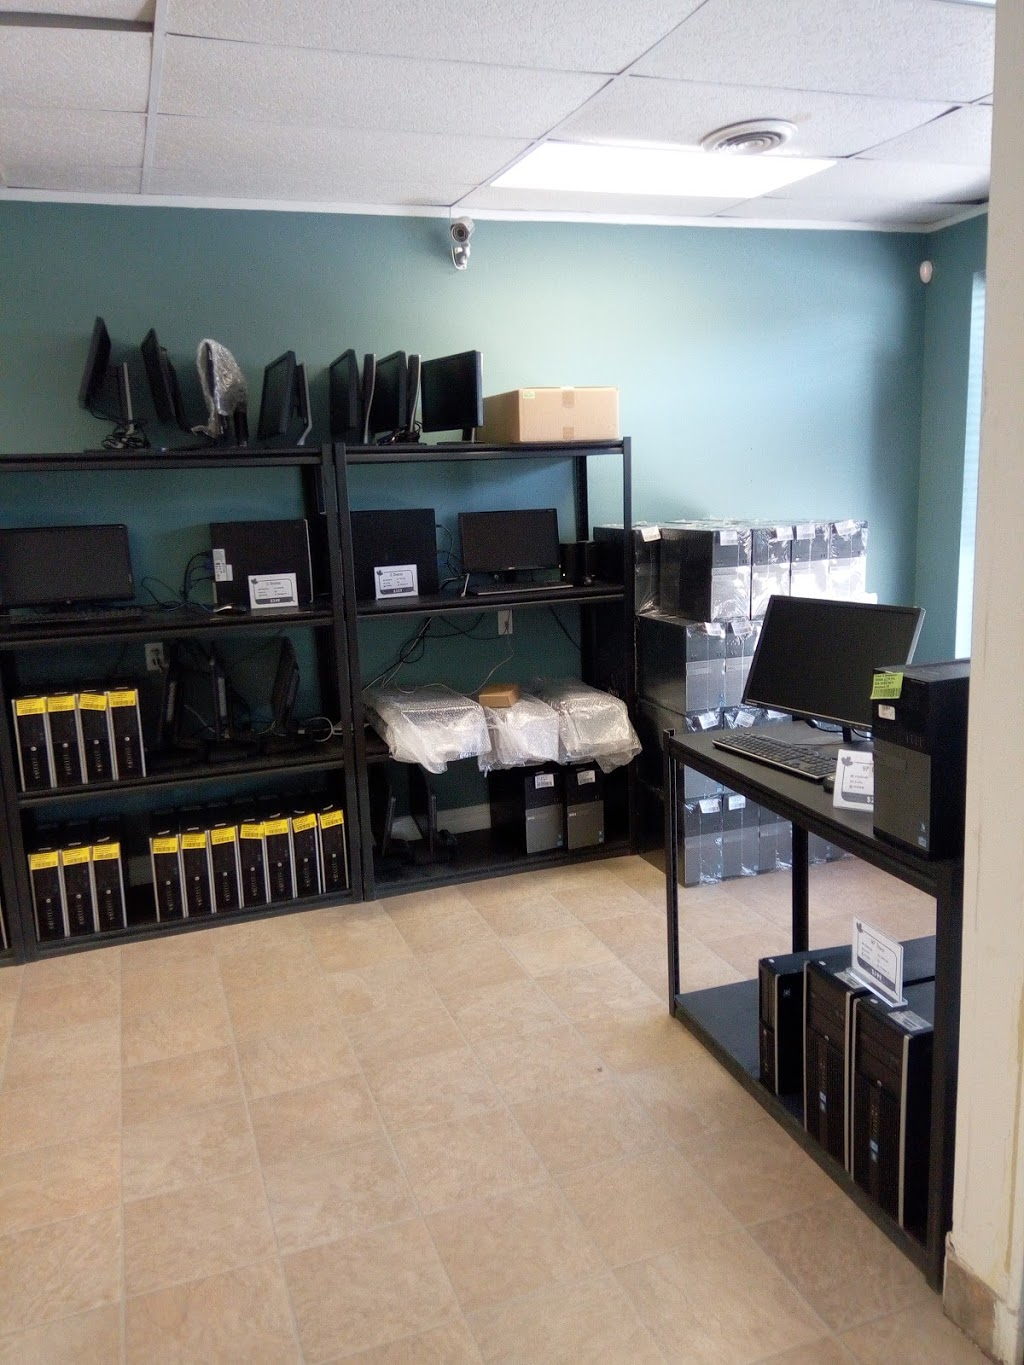 CTP Computers | electronics store | 707 Talbot St, St Thomas, ON N5P 1E1, Canada | 5196378071 OR +1 519-637-8071